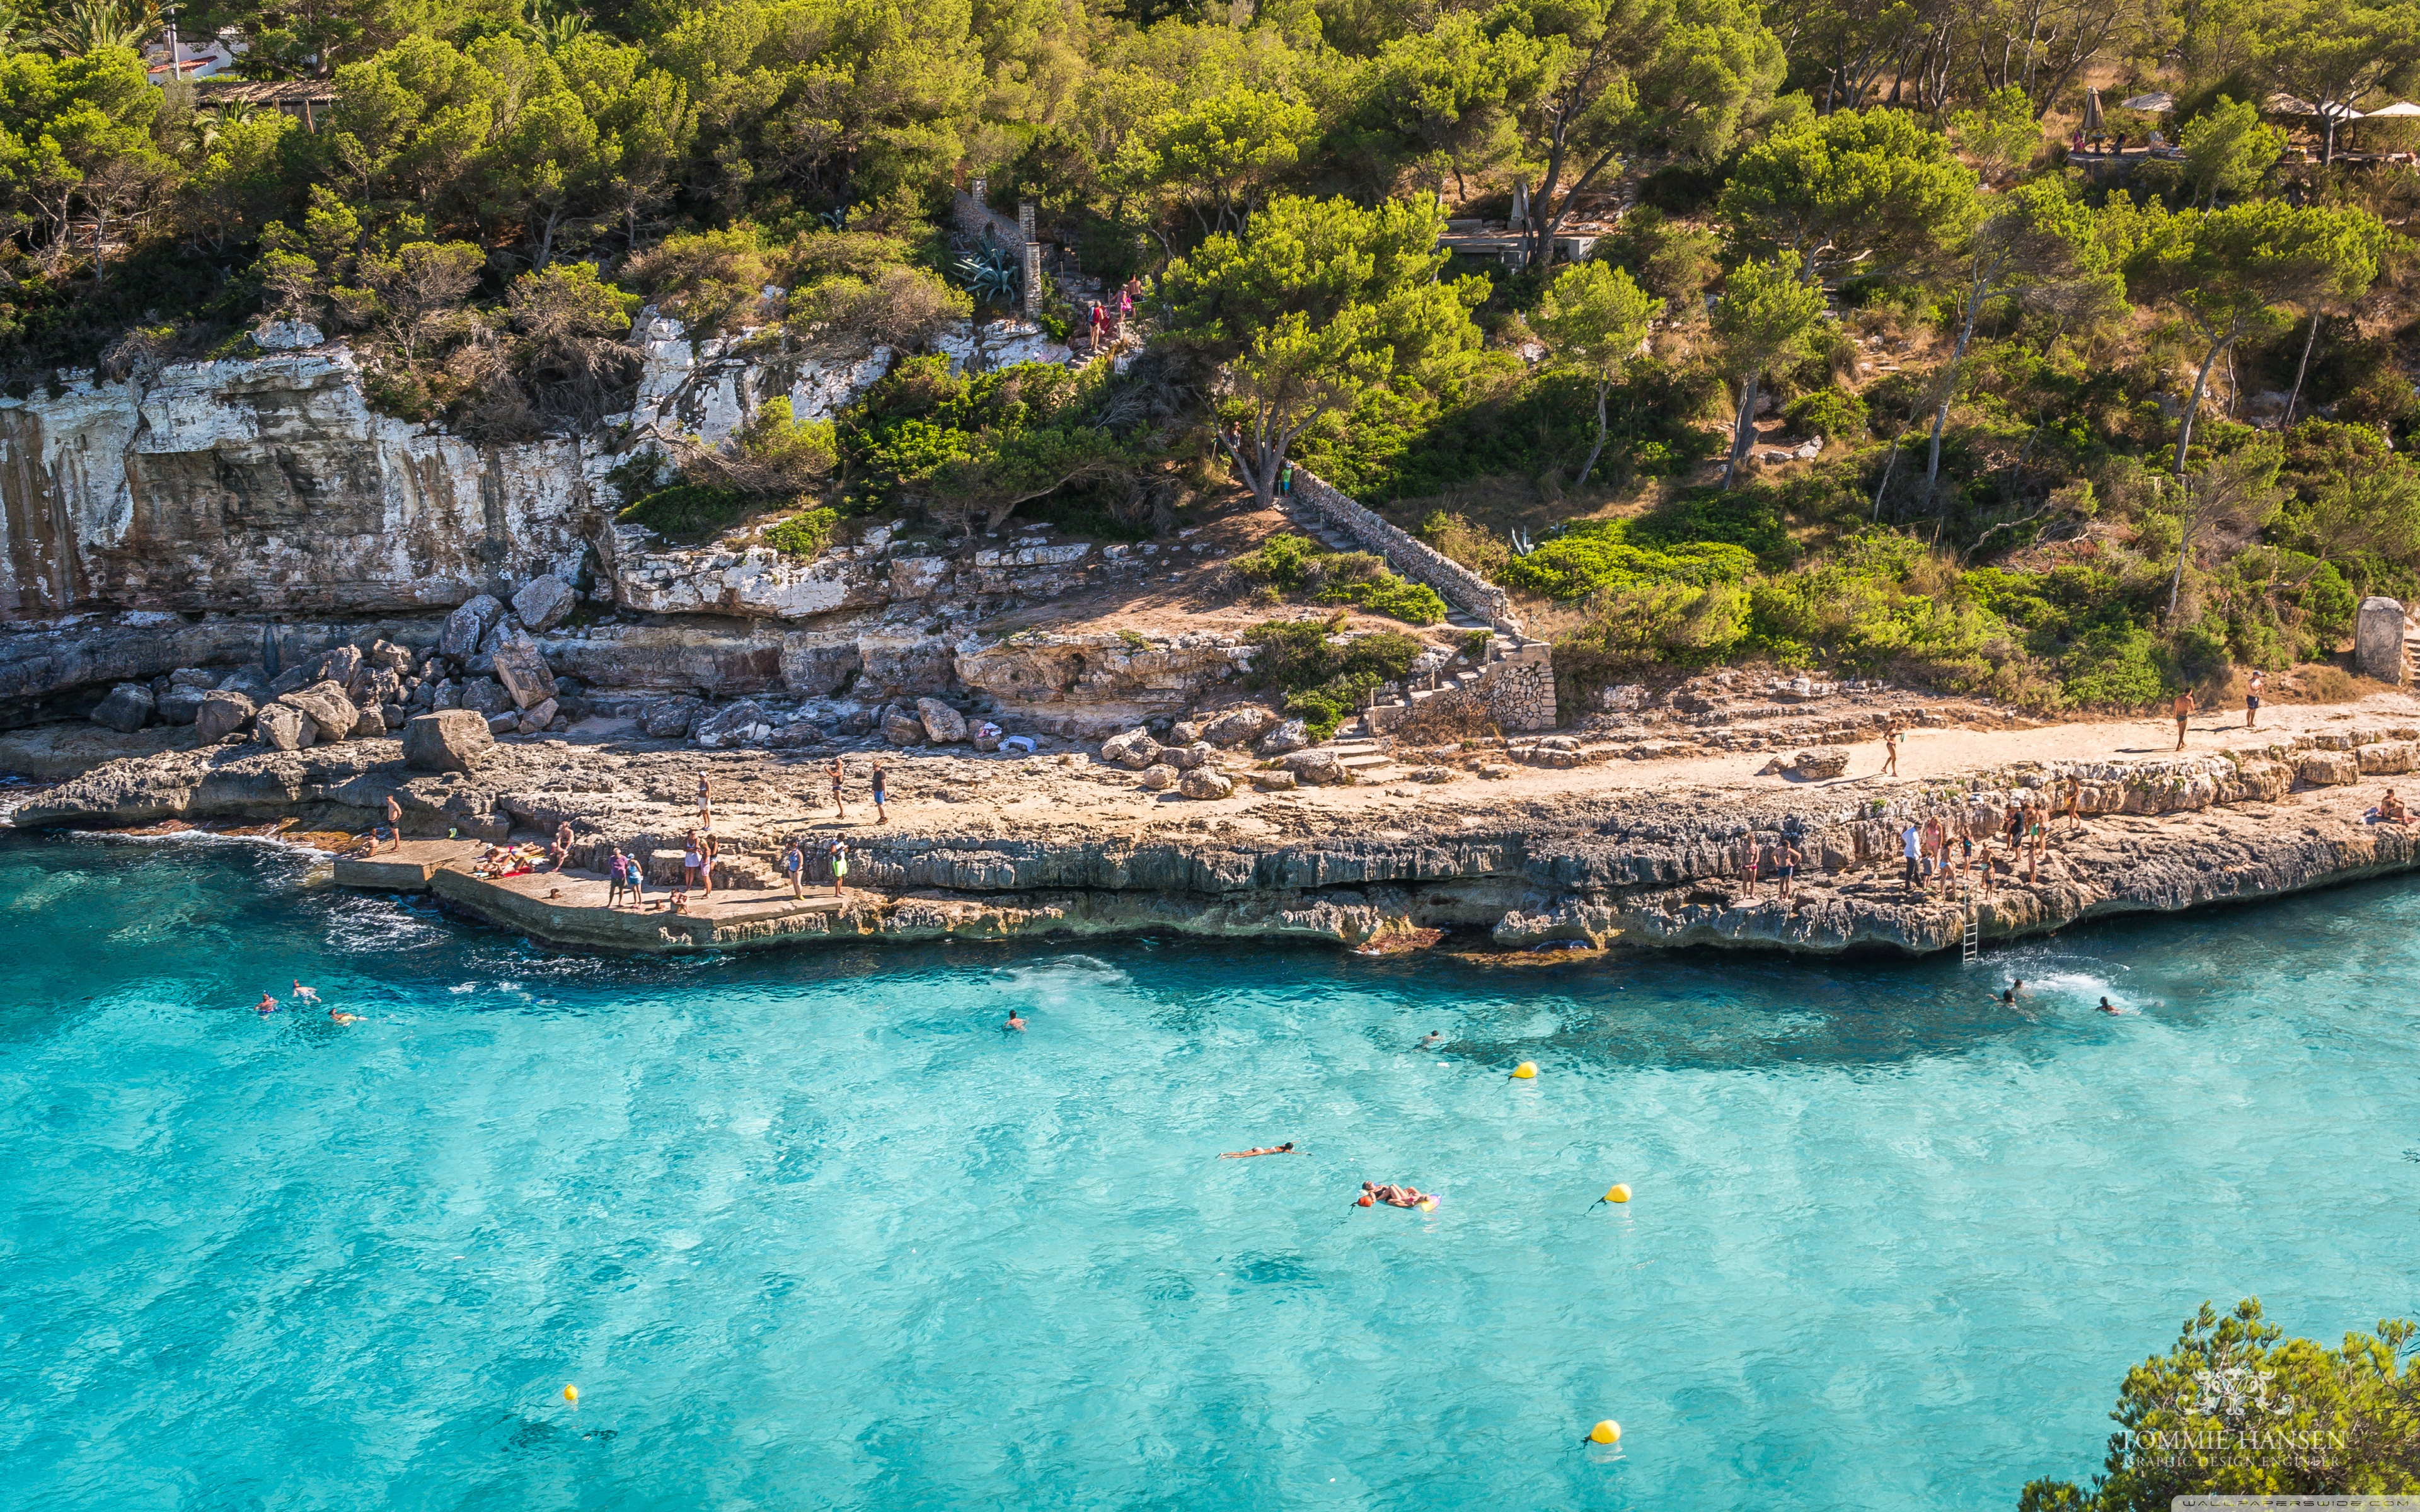 Cala Llombards Mallorca 4K HD Desktop Wallpaper for 4K Ultra 3840x2400